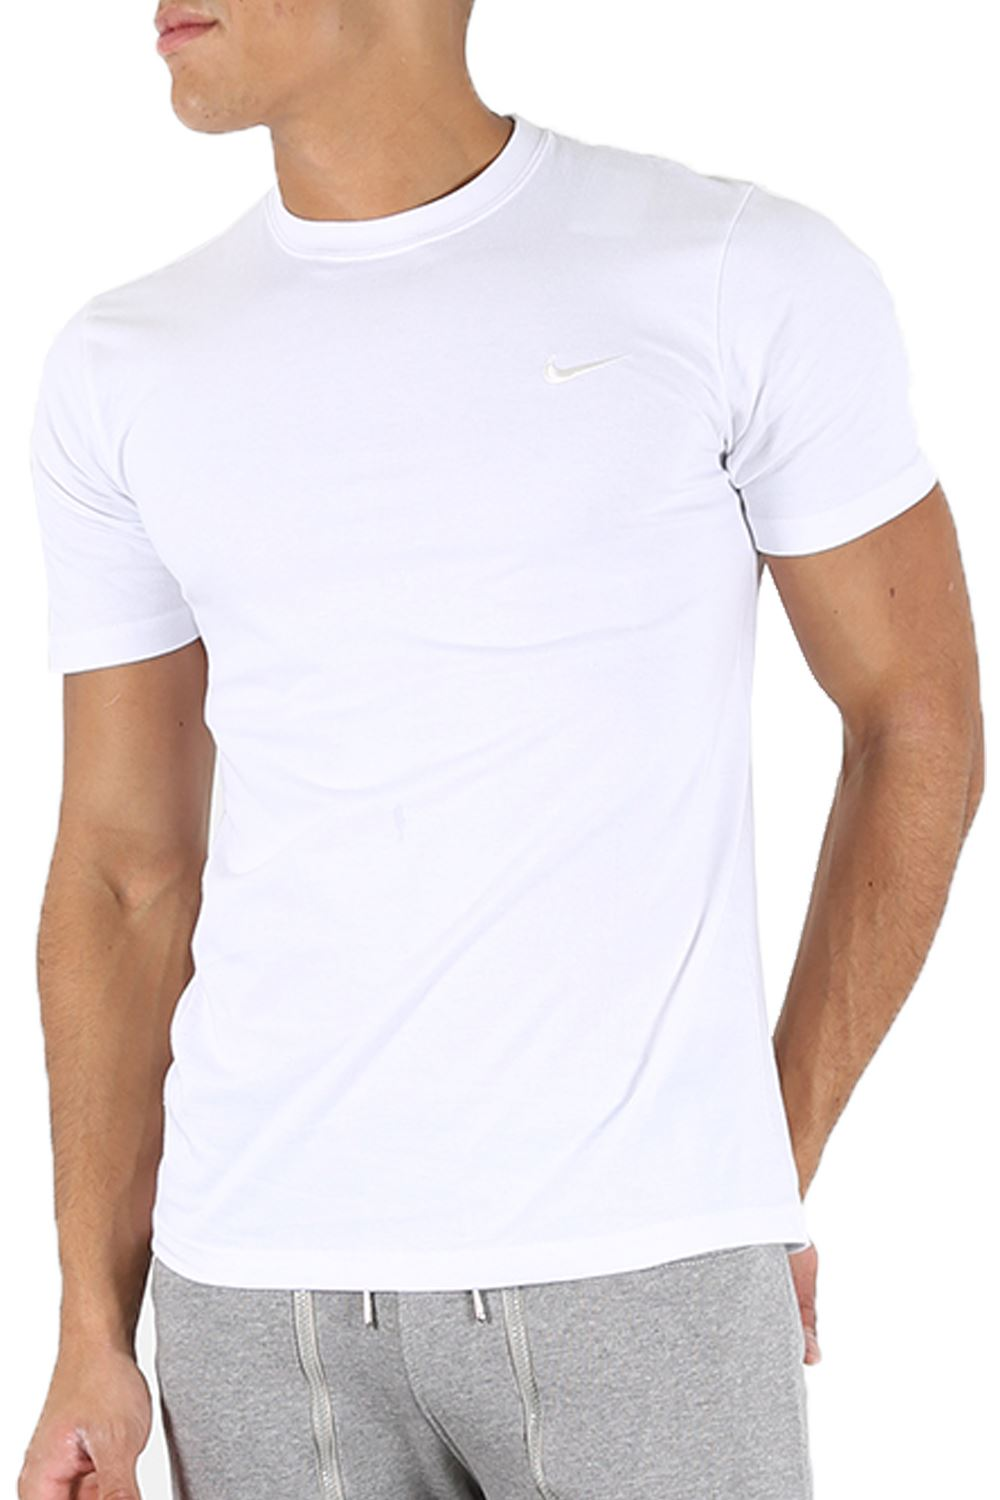 Discover men's crew neck t-shirts at ASOS. Shop our range of crew neck t-shirts and browse hundreds of styles.